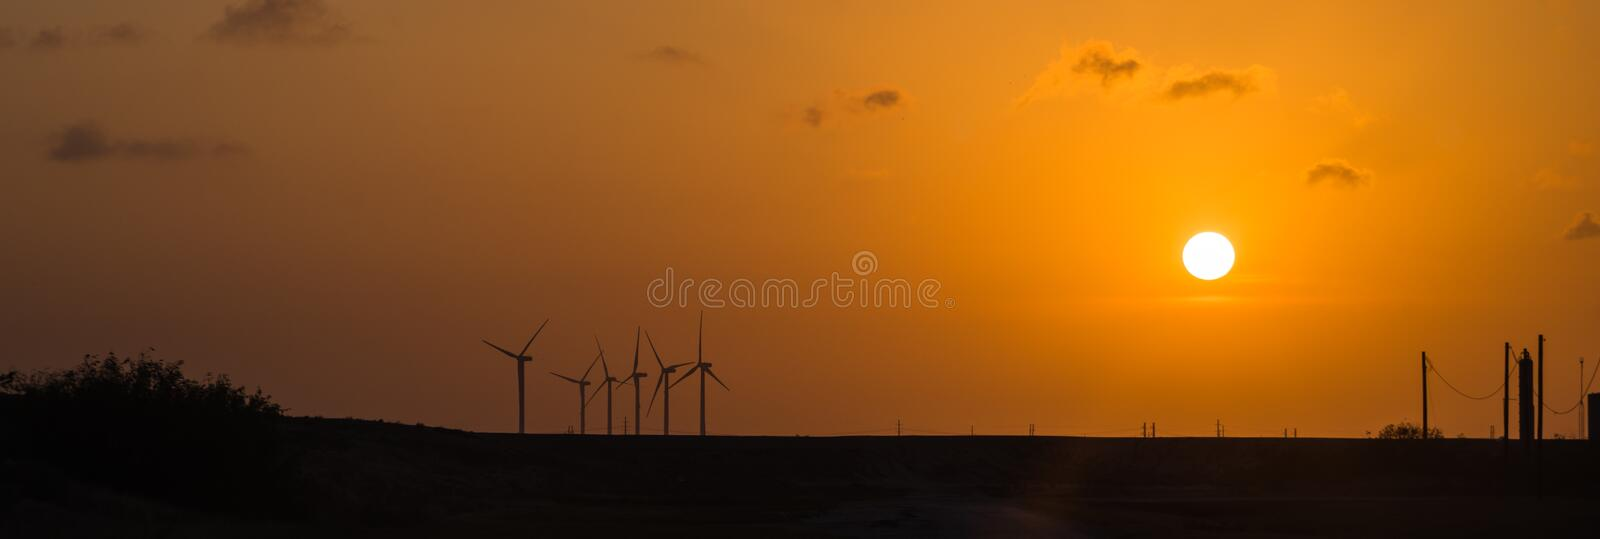 Turbines de vent au coucher du soleil orange dans le rural du Corpus Christi, le Texas, Etats-Unis photos stock